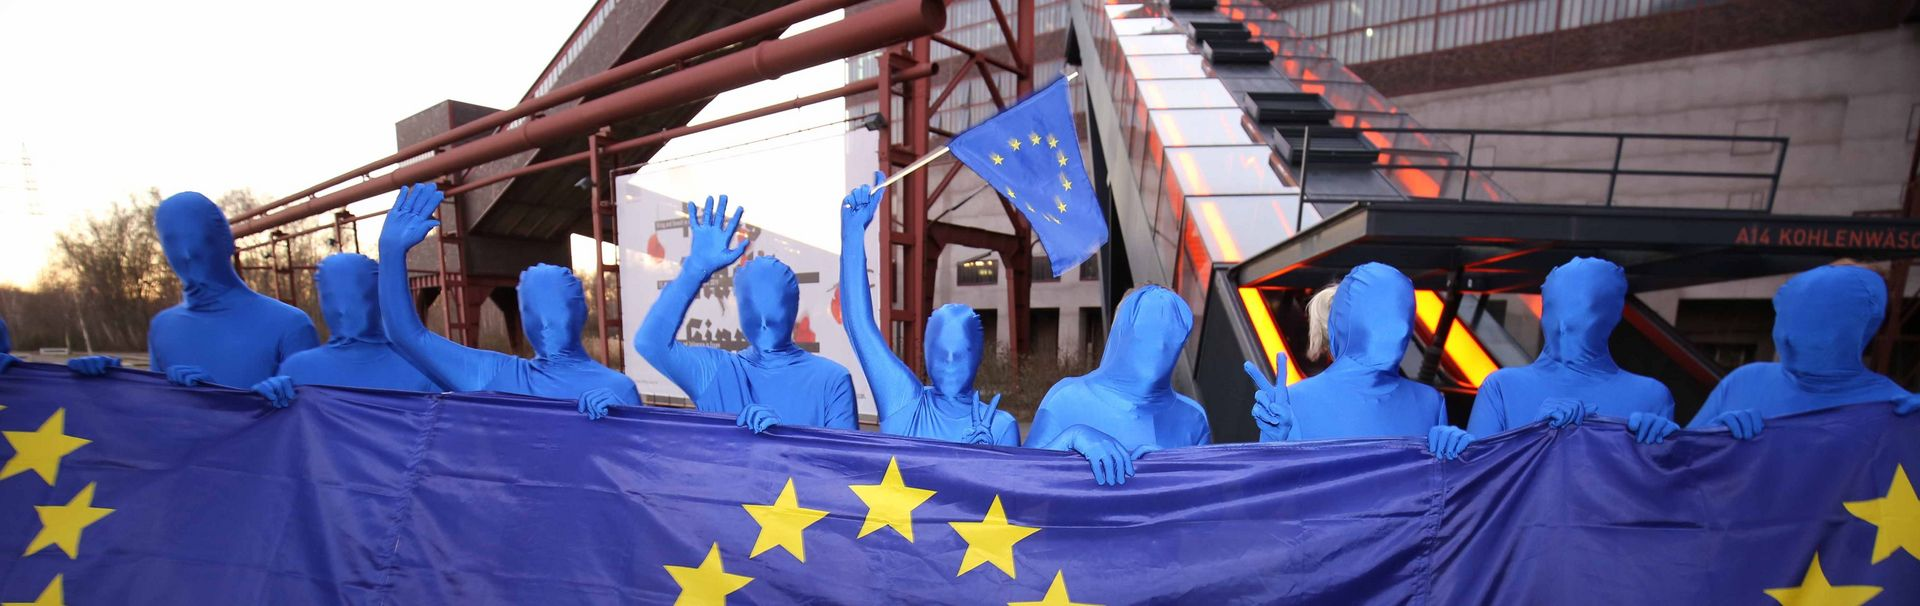 Pulse of Europe auf Zollverein, Foto: Michael Schwarze-Rodrian